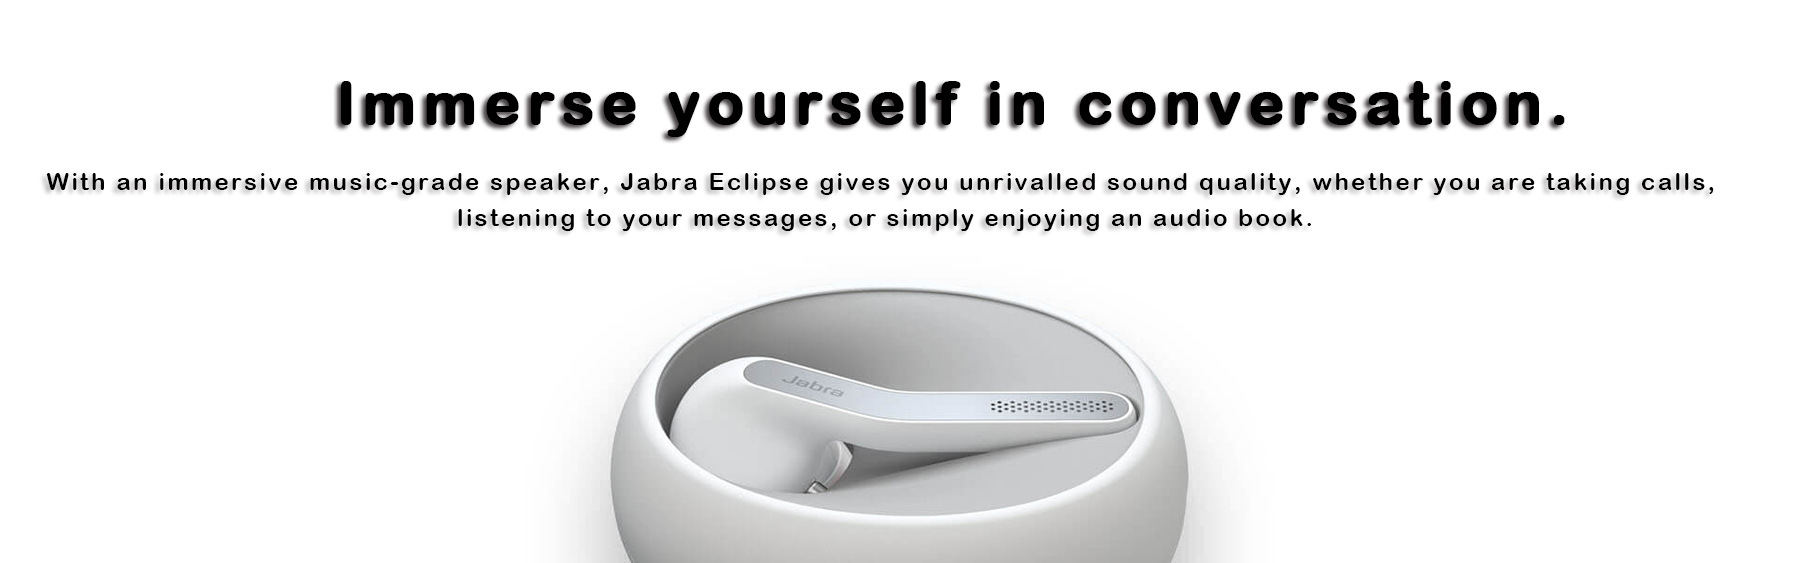 Black Jabra Eclipse Bluetooth Wireless Hands-Free Headset Compatible with Android and iOS Smartphones